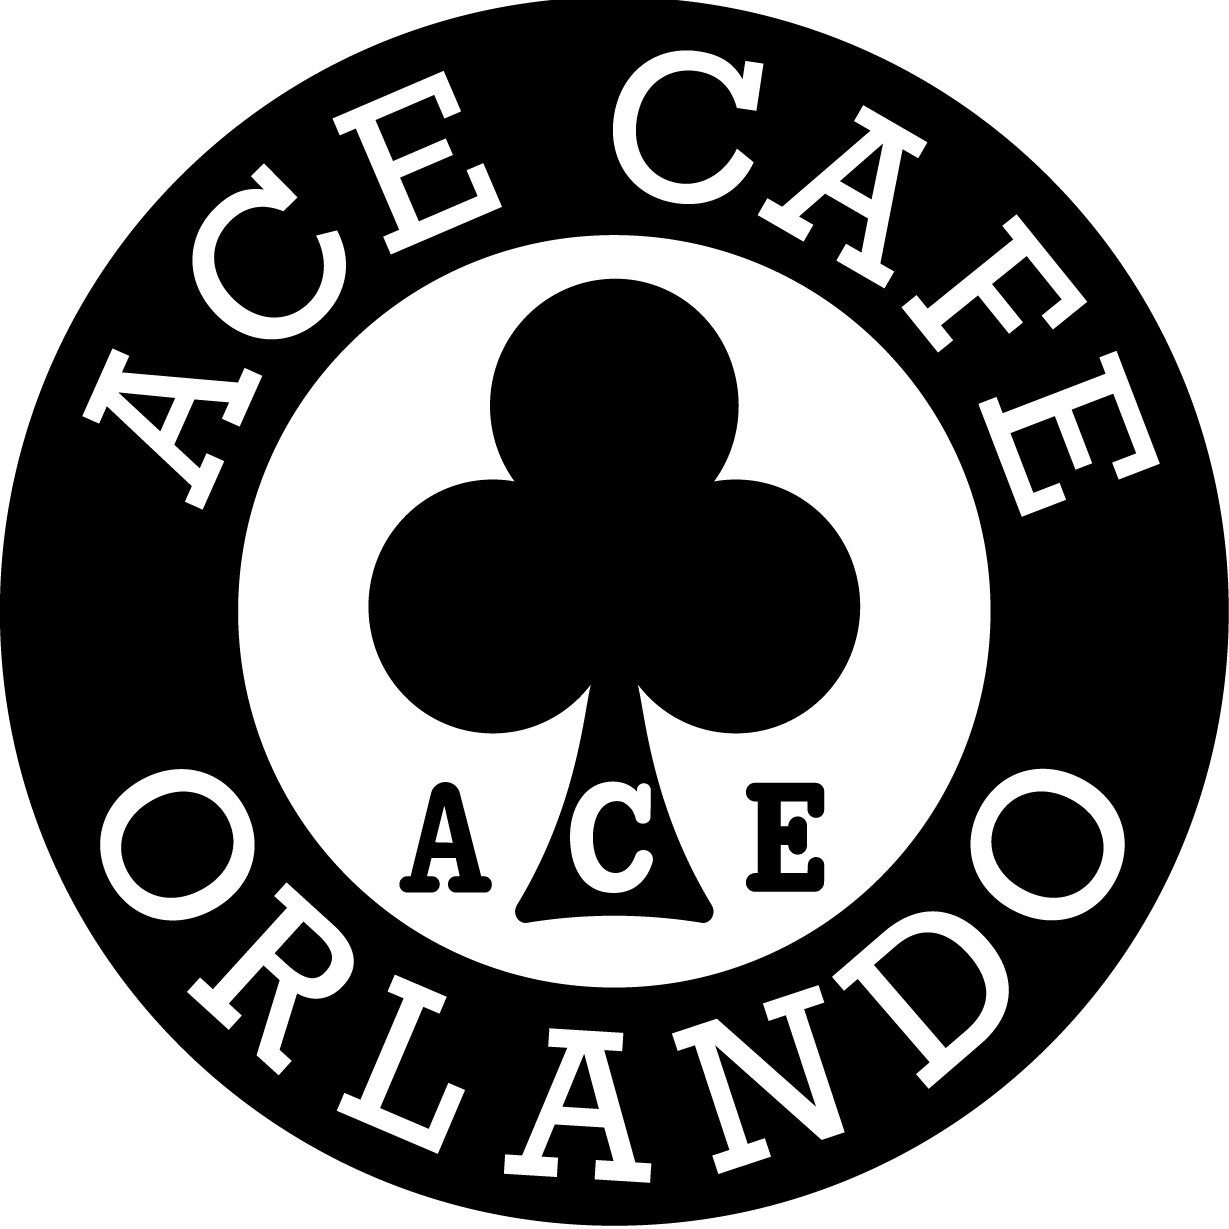 Hotels near Ace Cafe Orlando